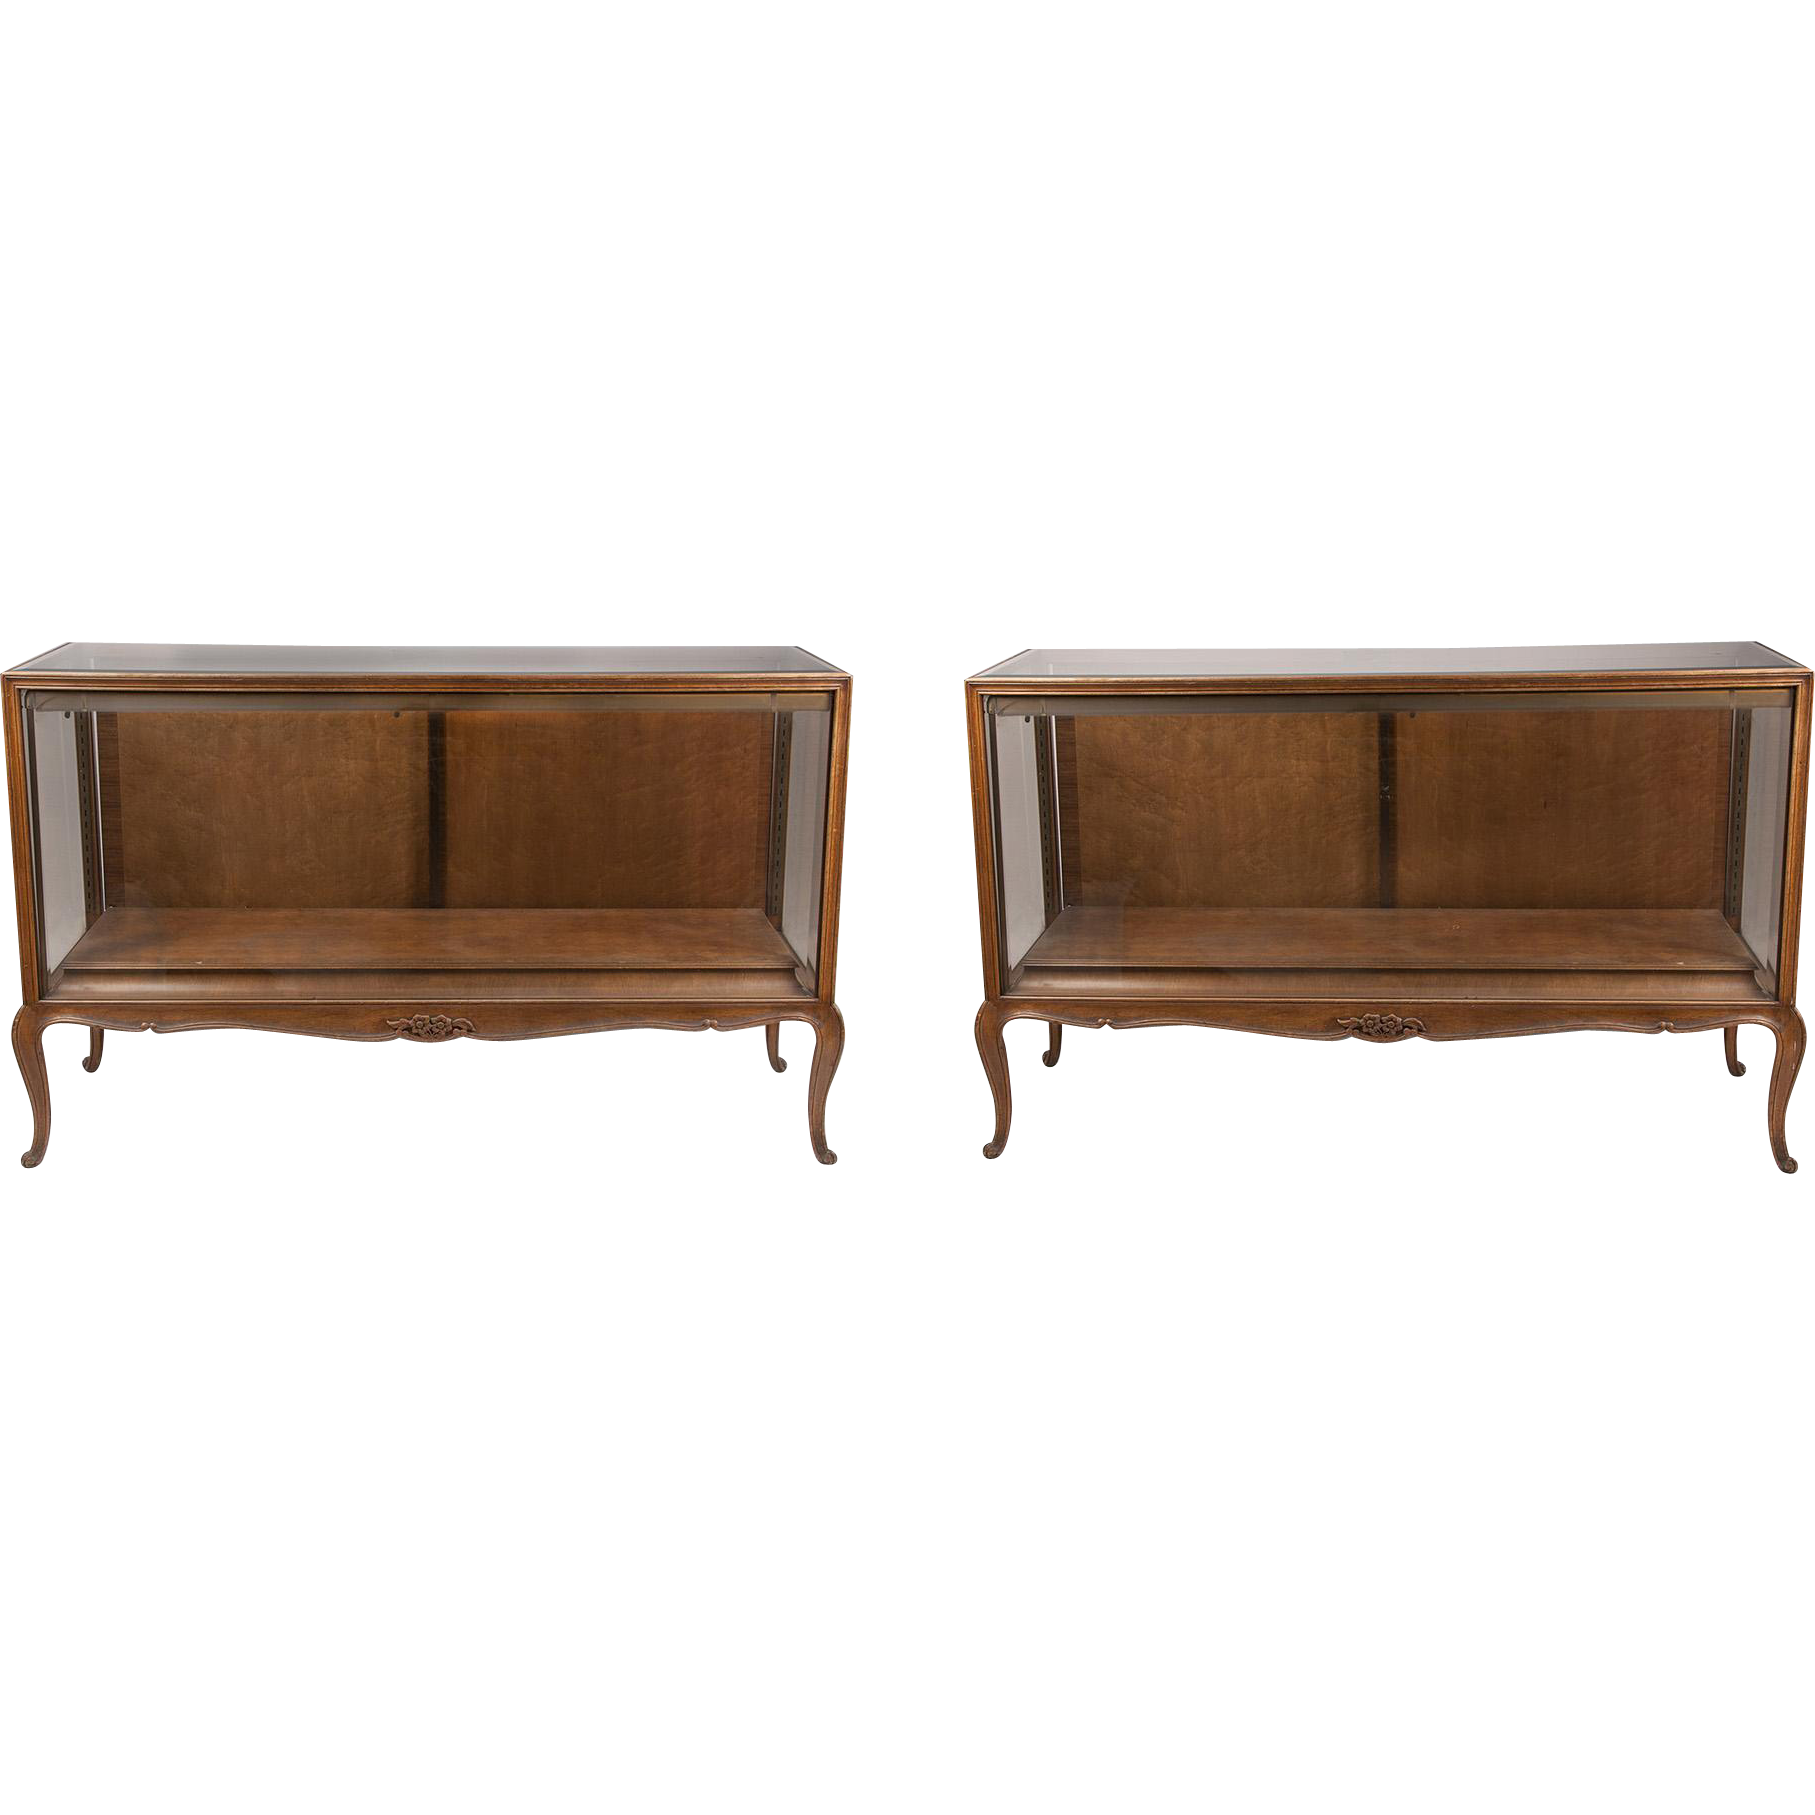 Vintage Louis XV French Provincial Display Cabinets or Vitrines